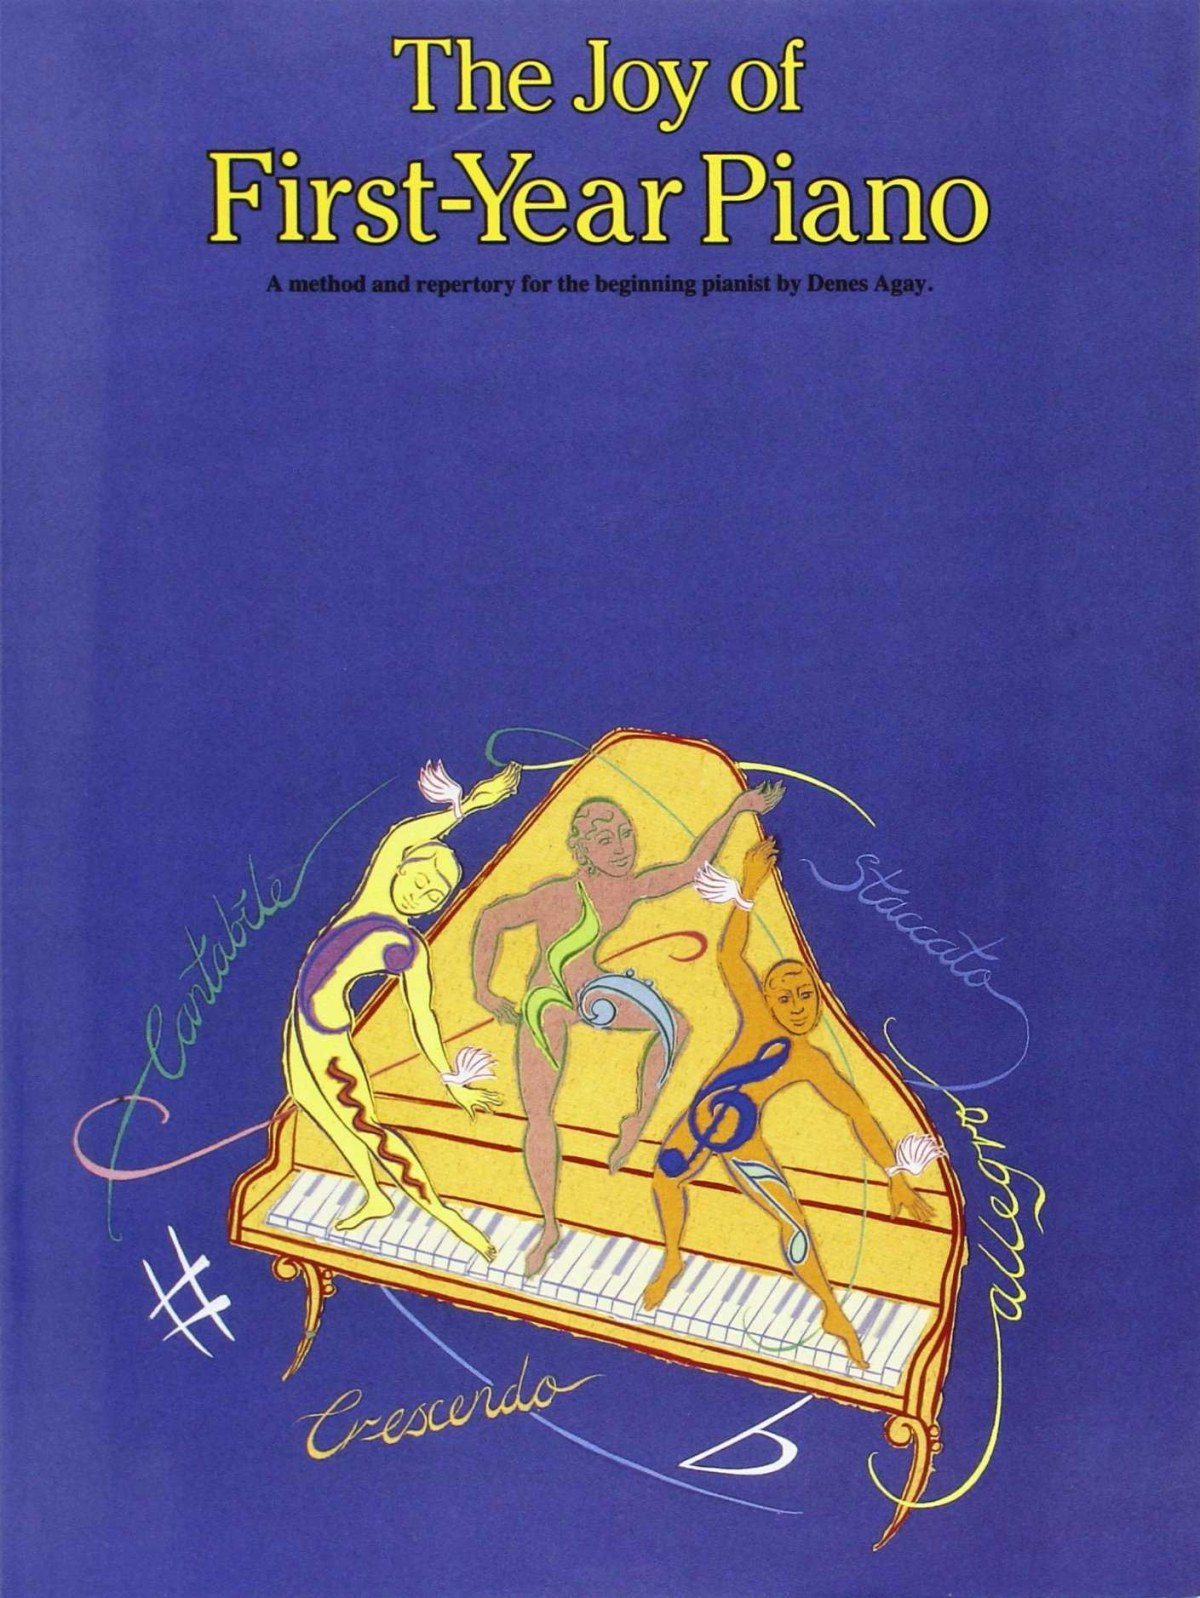 THE JOY OF FIRST YEARS PIANO